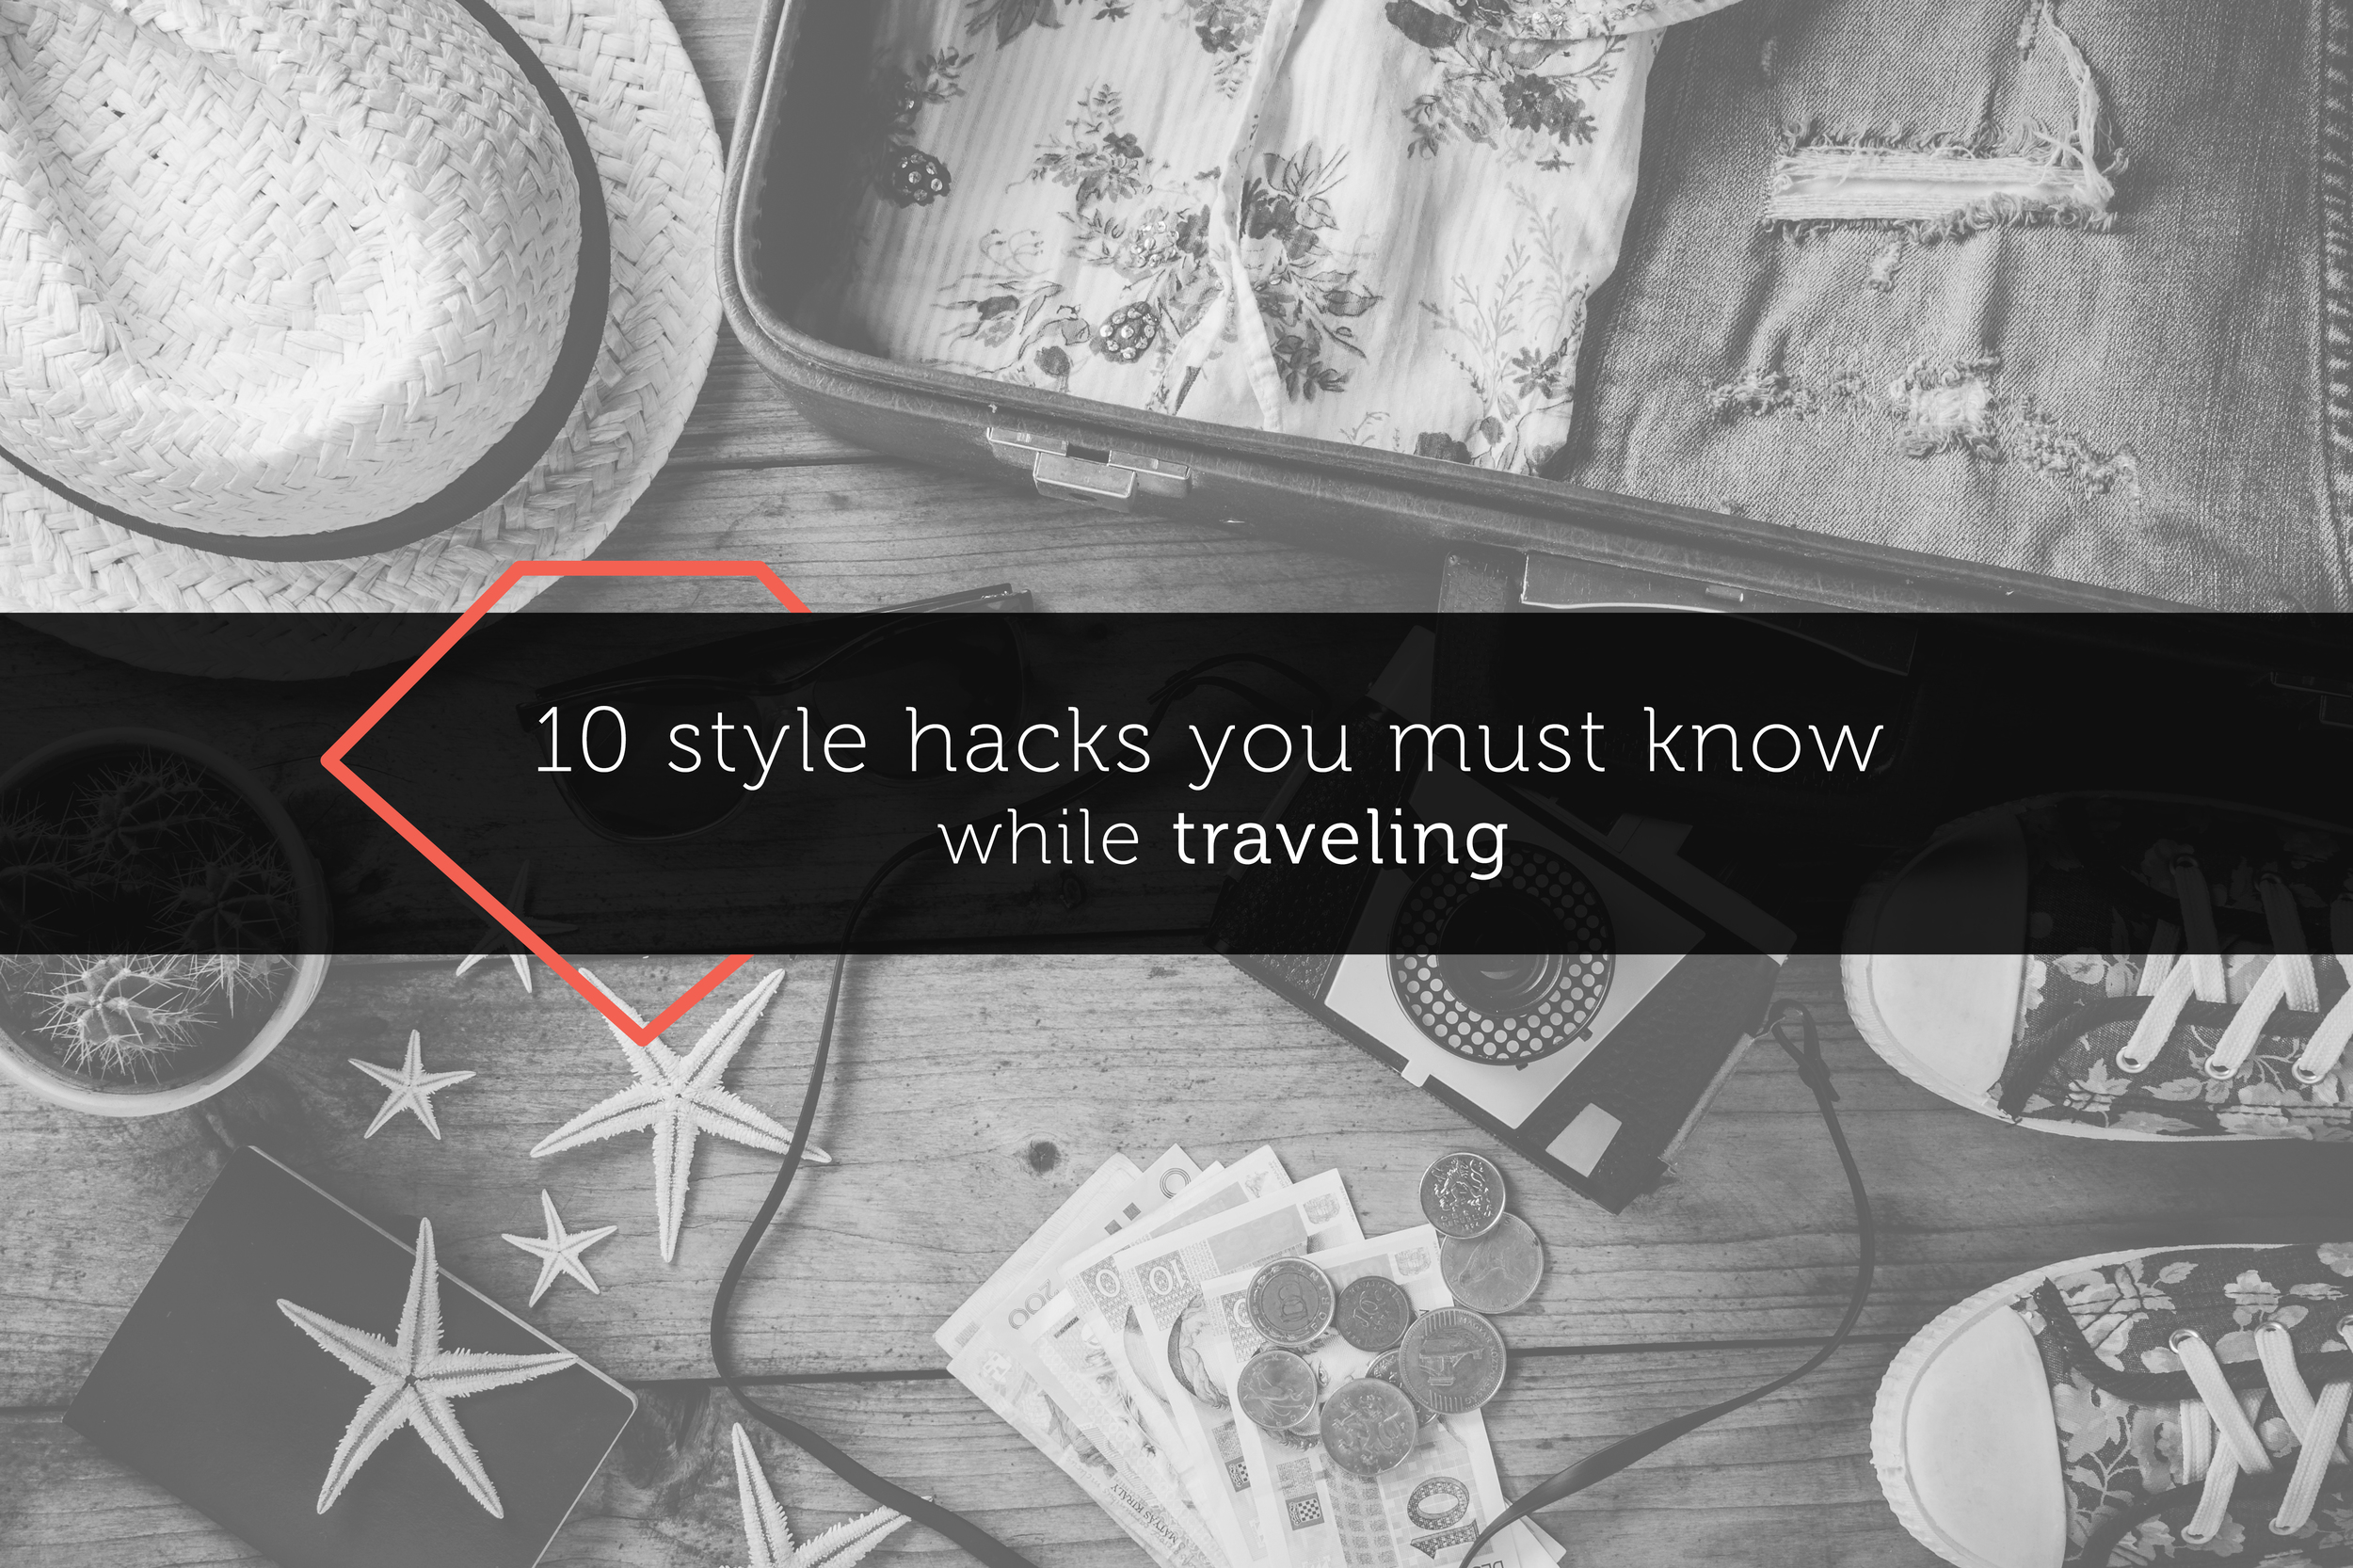 10-style-hacks-travel.jpg